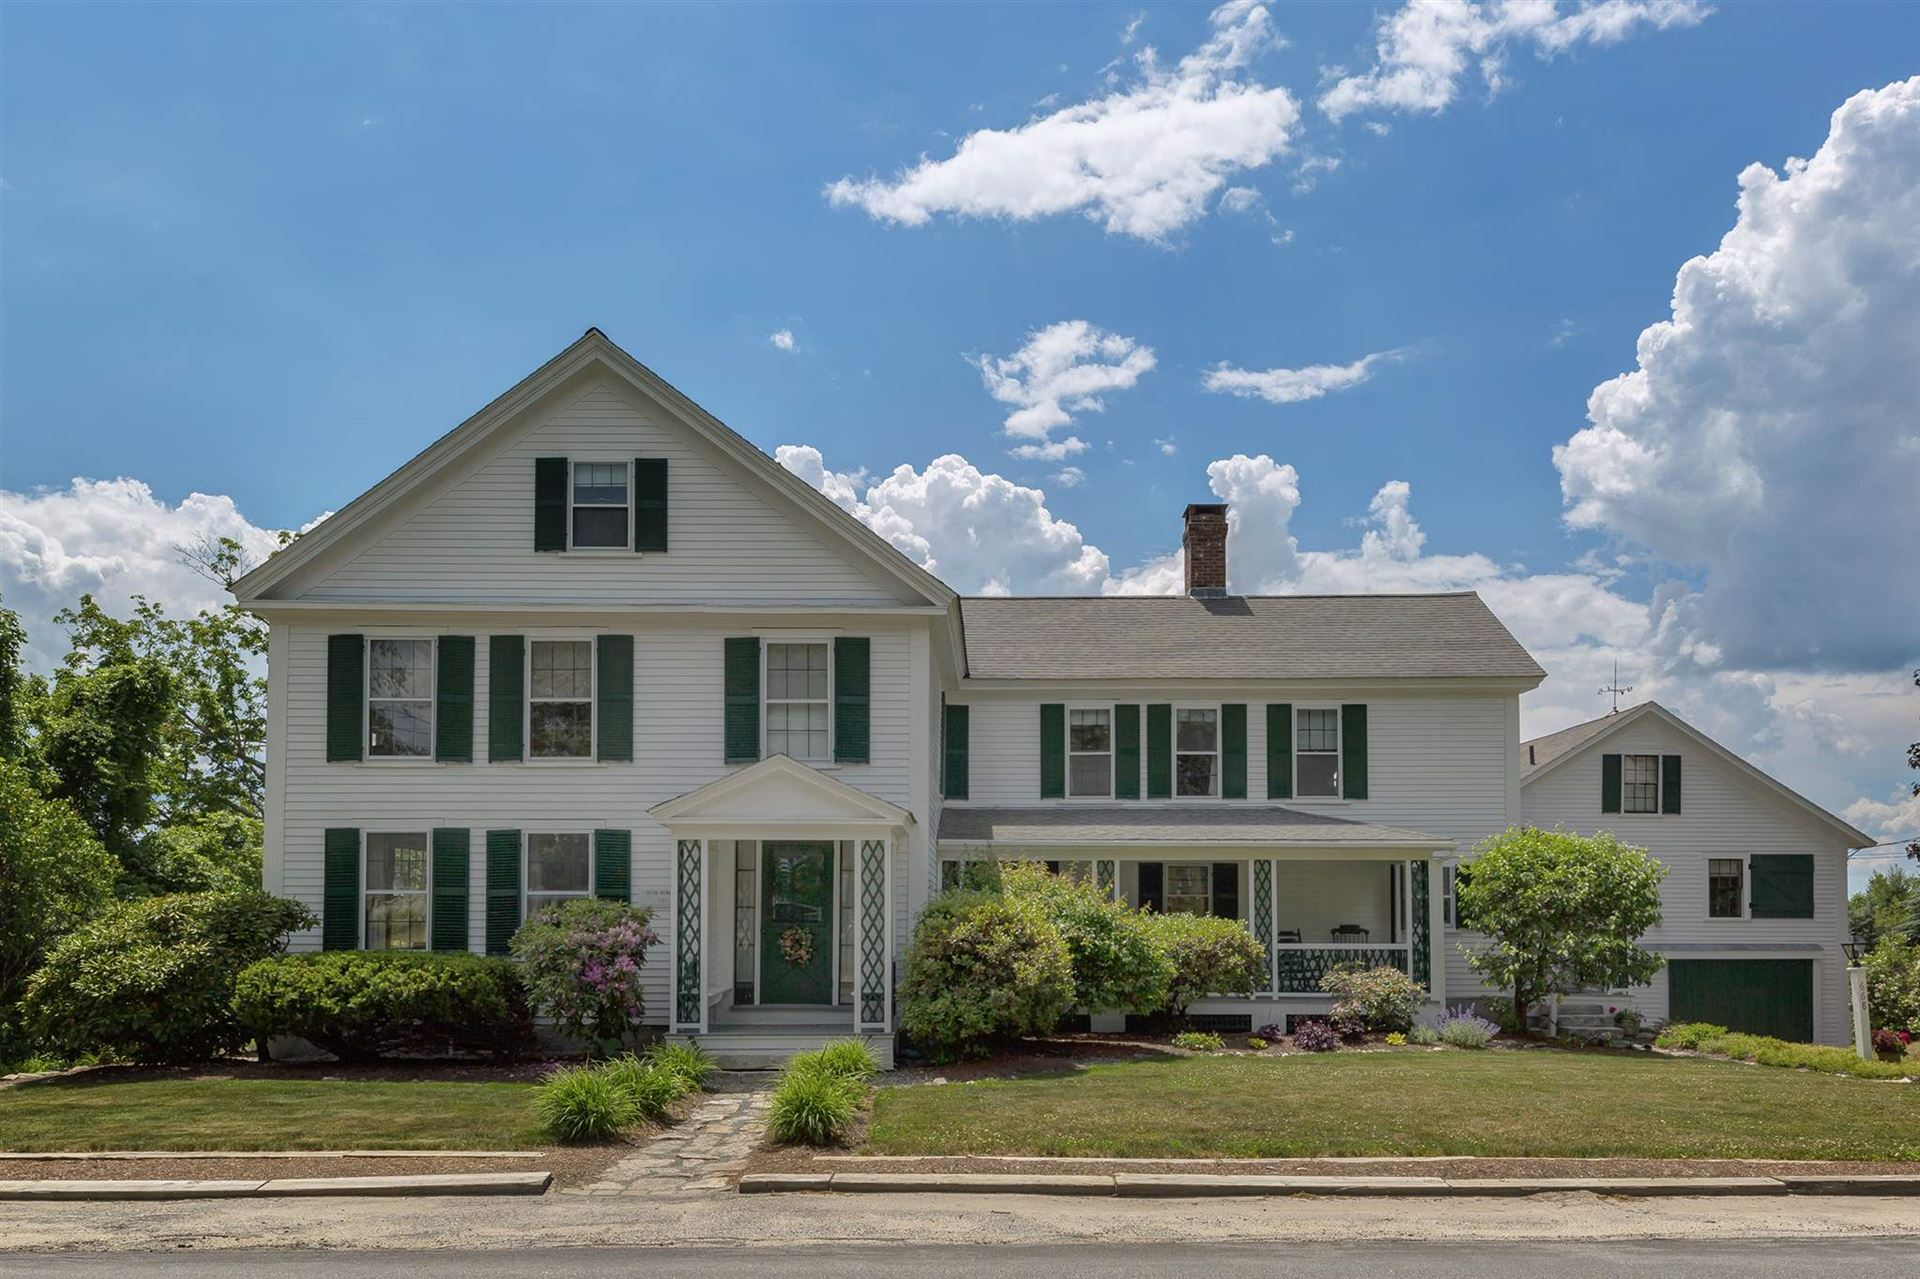 668 Main Street, New London, NH 03257 - MLS#: 4814660